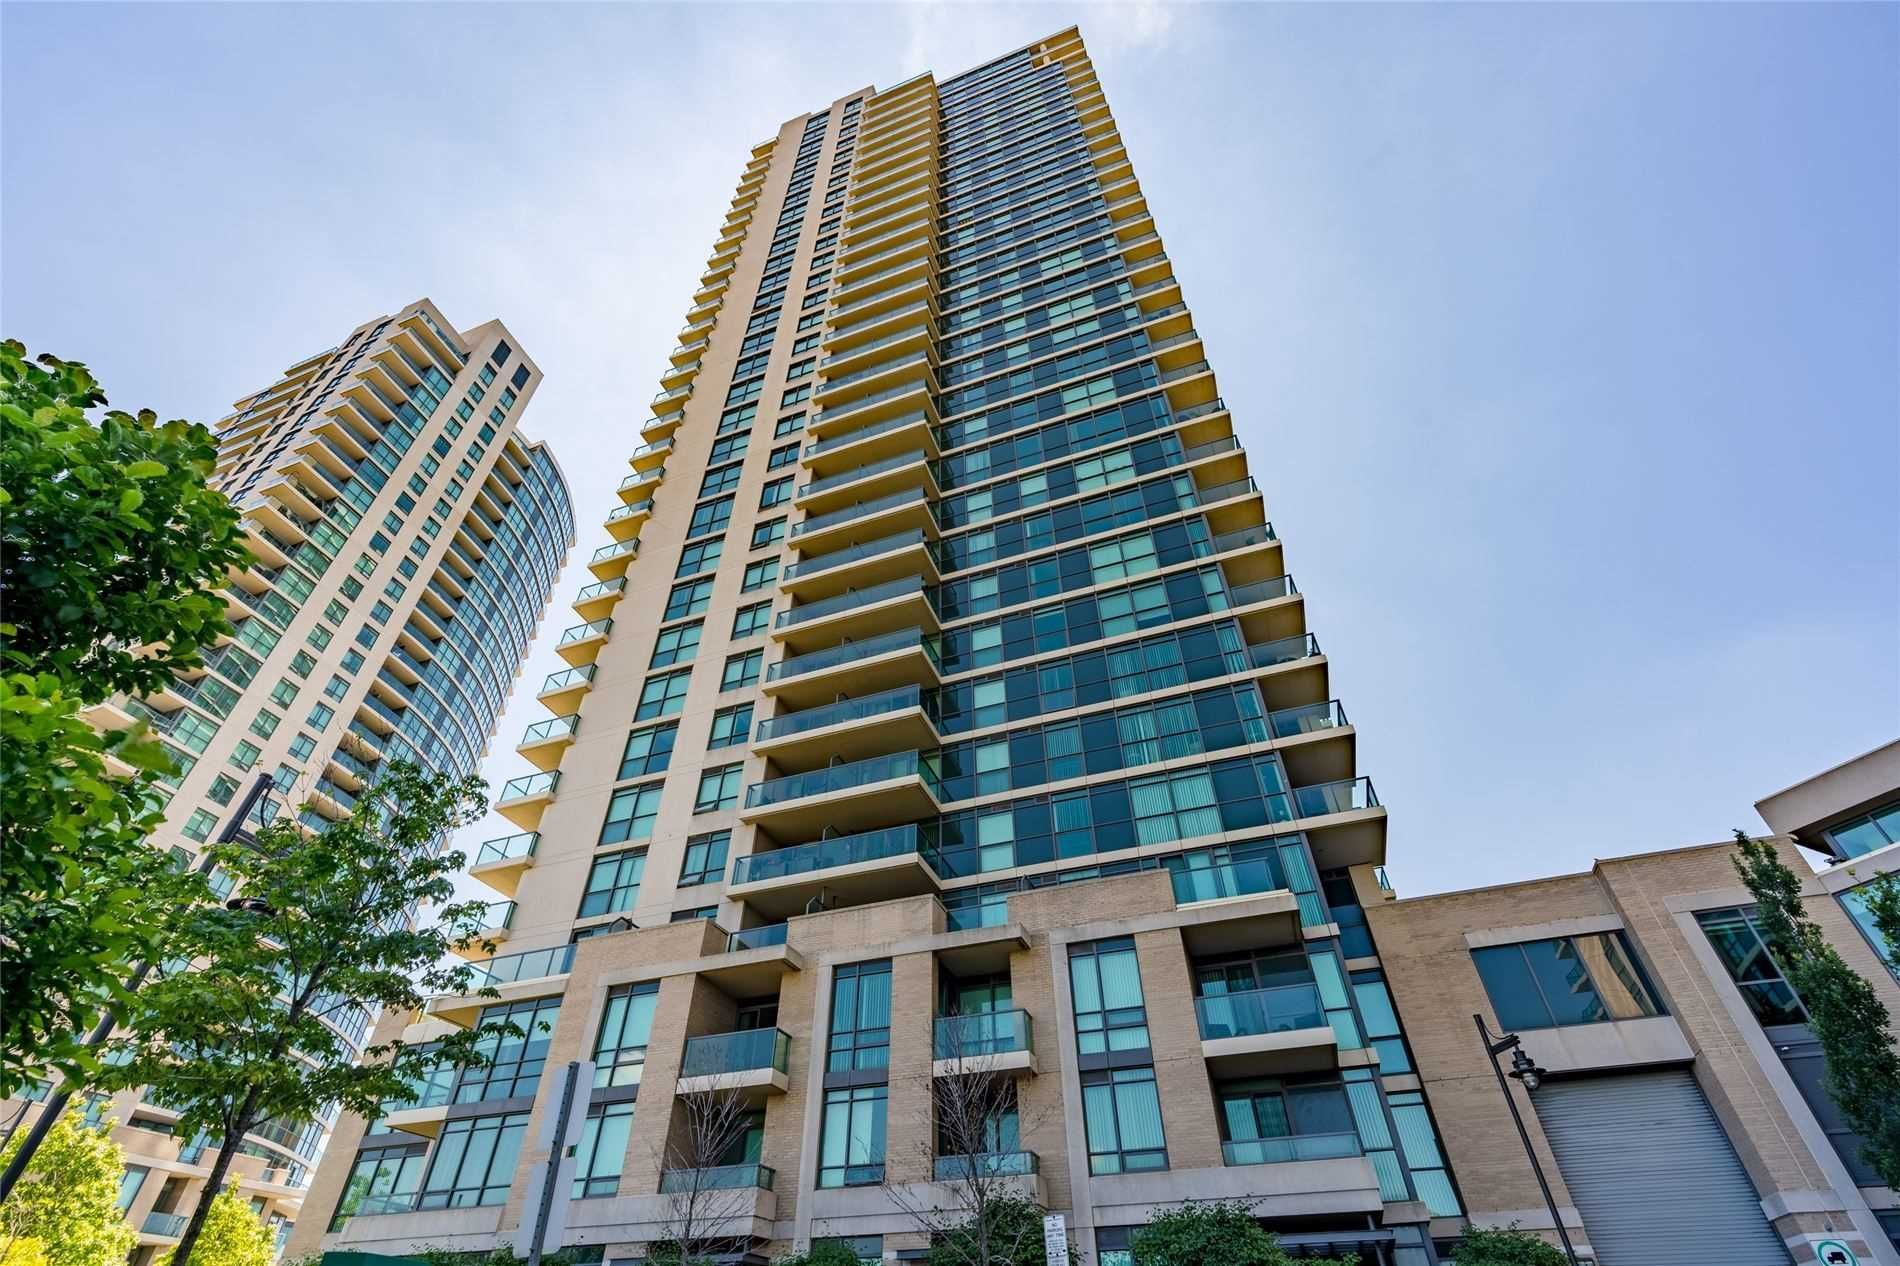 225 Sherway Gardens Rd, unit 2006 for rent in Islington | City Centre West - image #1